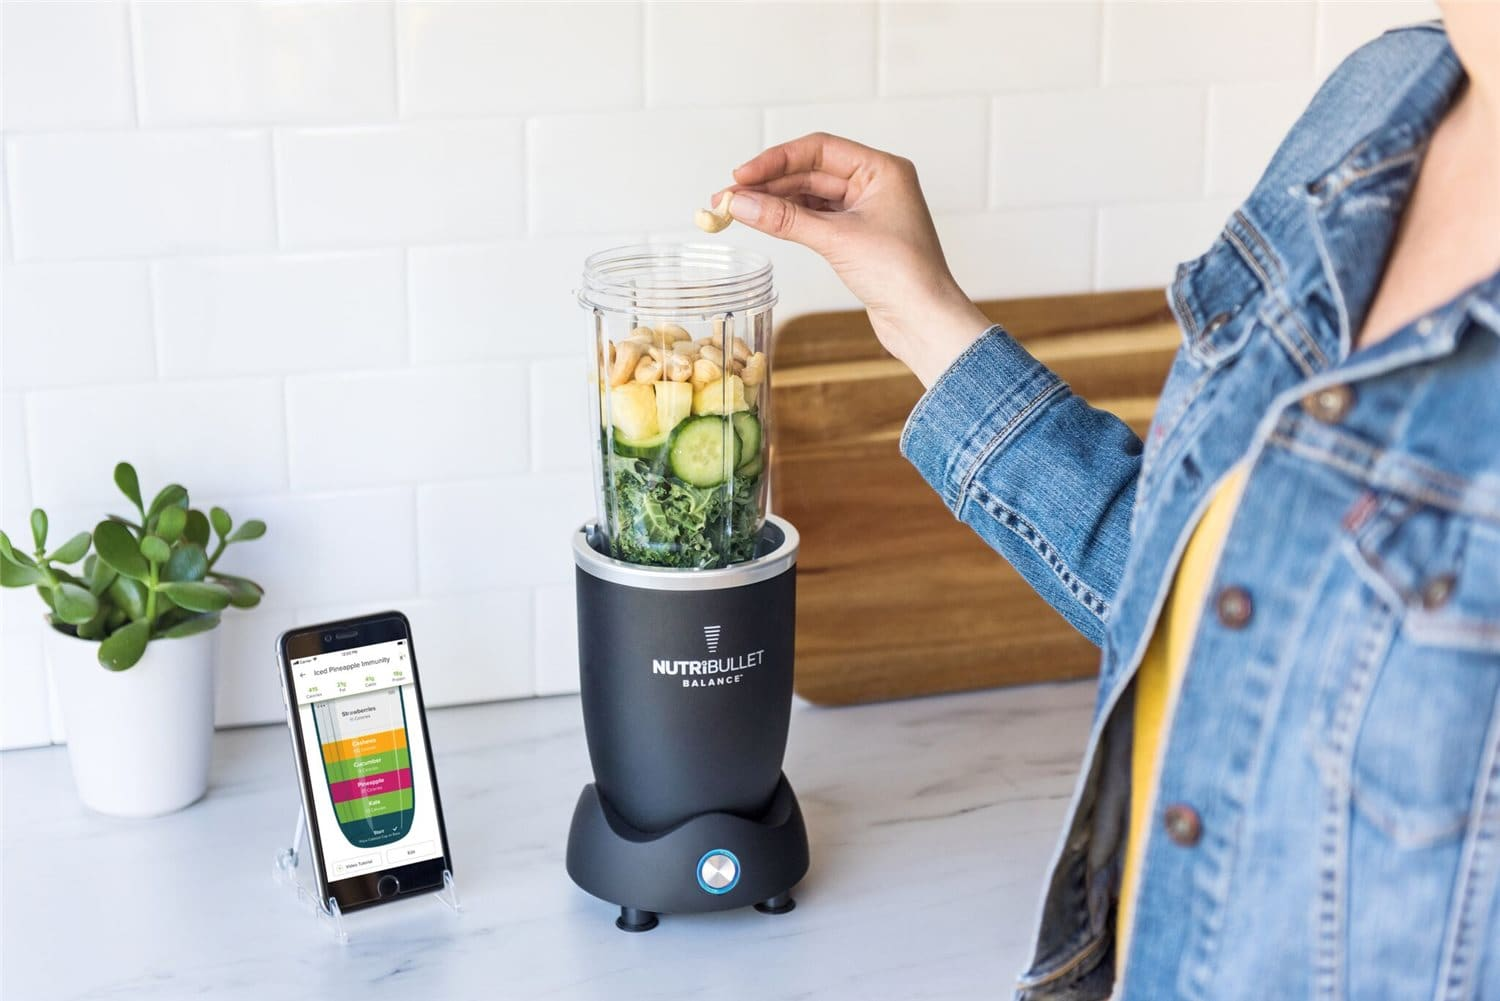 Nutribullet live weight system